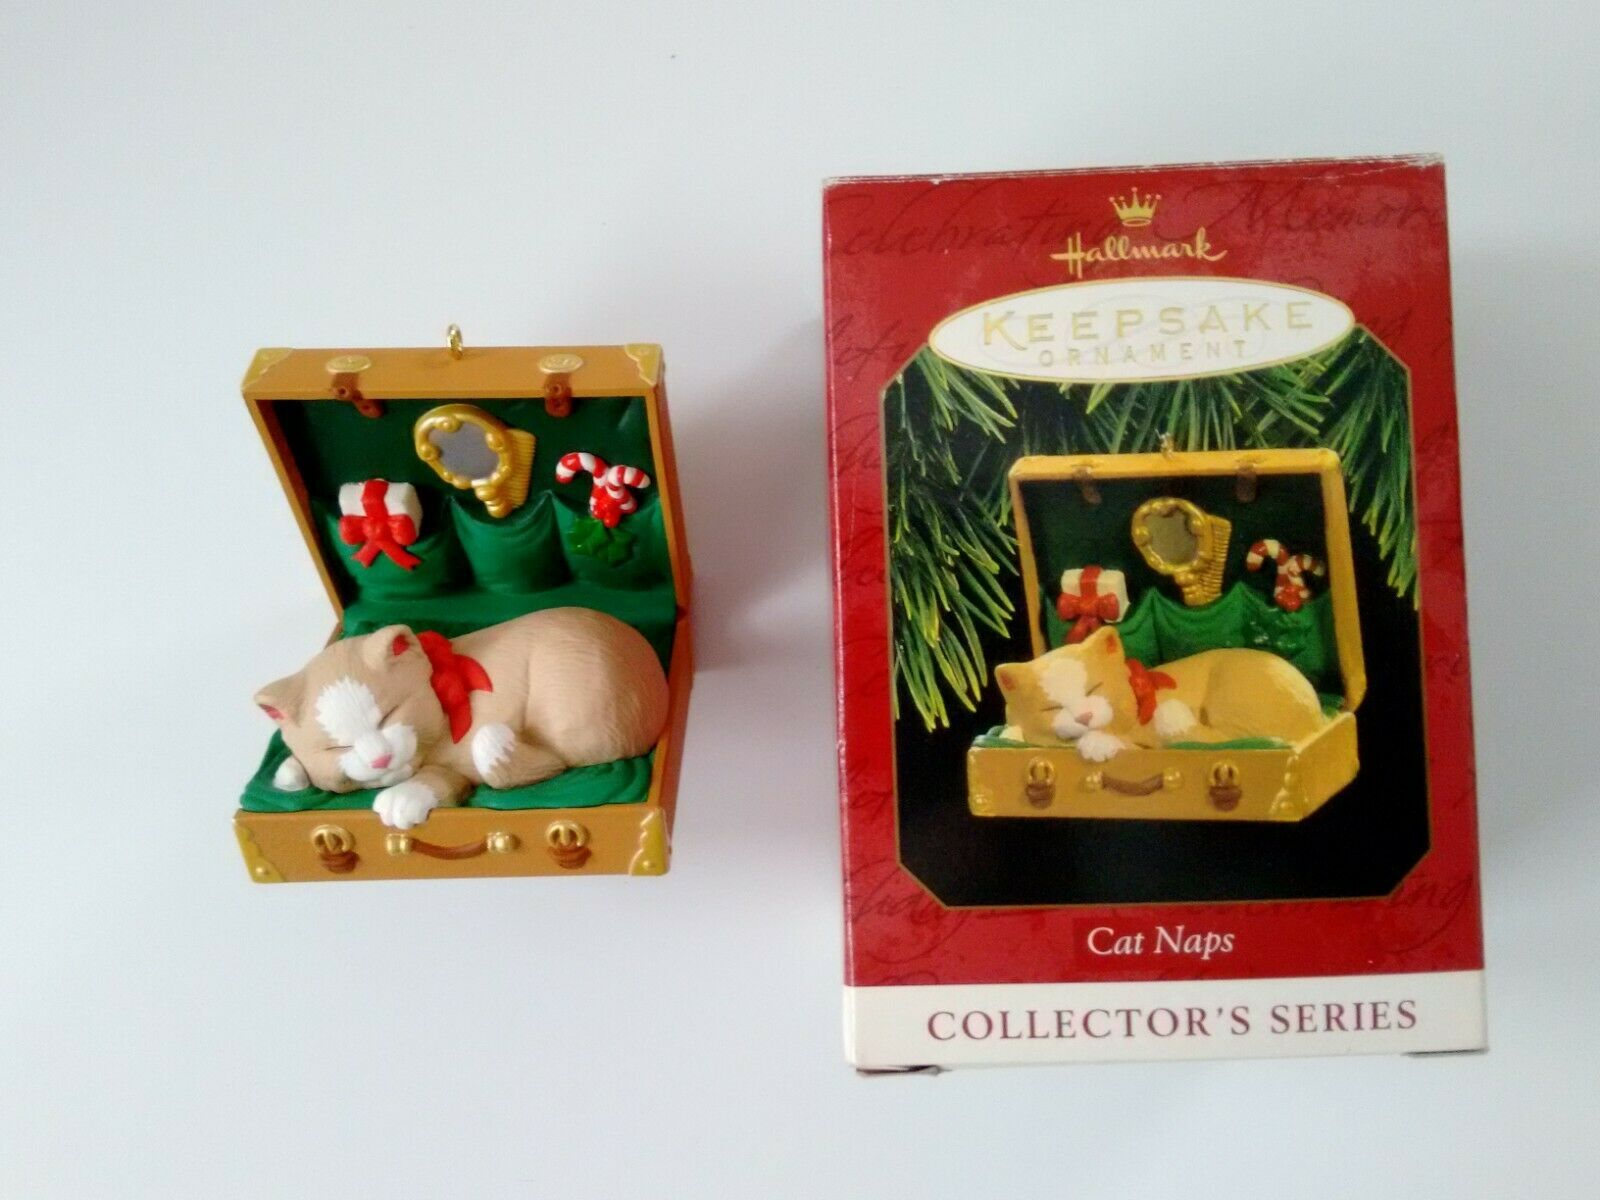 Primary image for Hallmark Keepsake Cat Naps Ornament #4 in Collector's Series 1997 06205